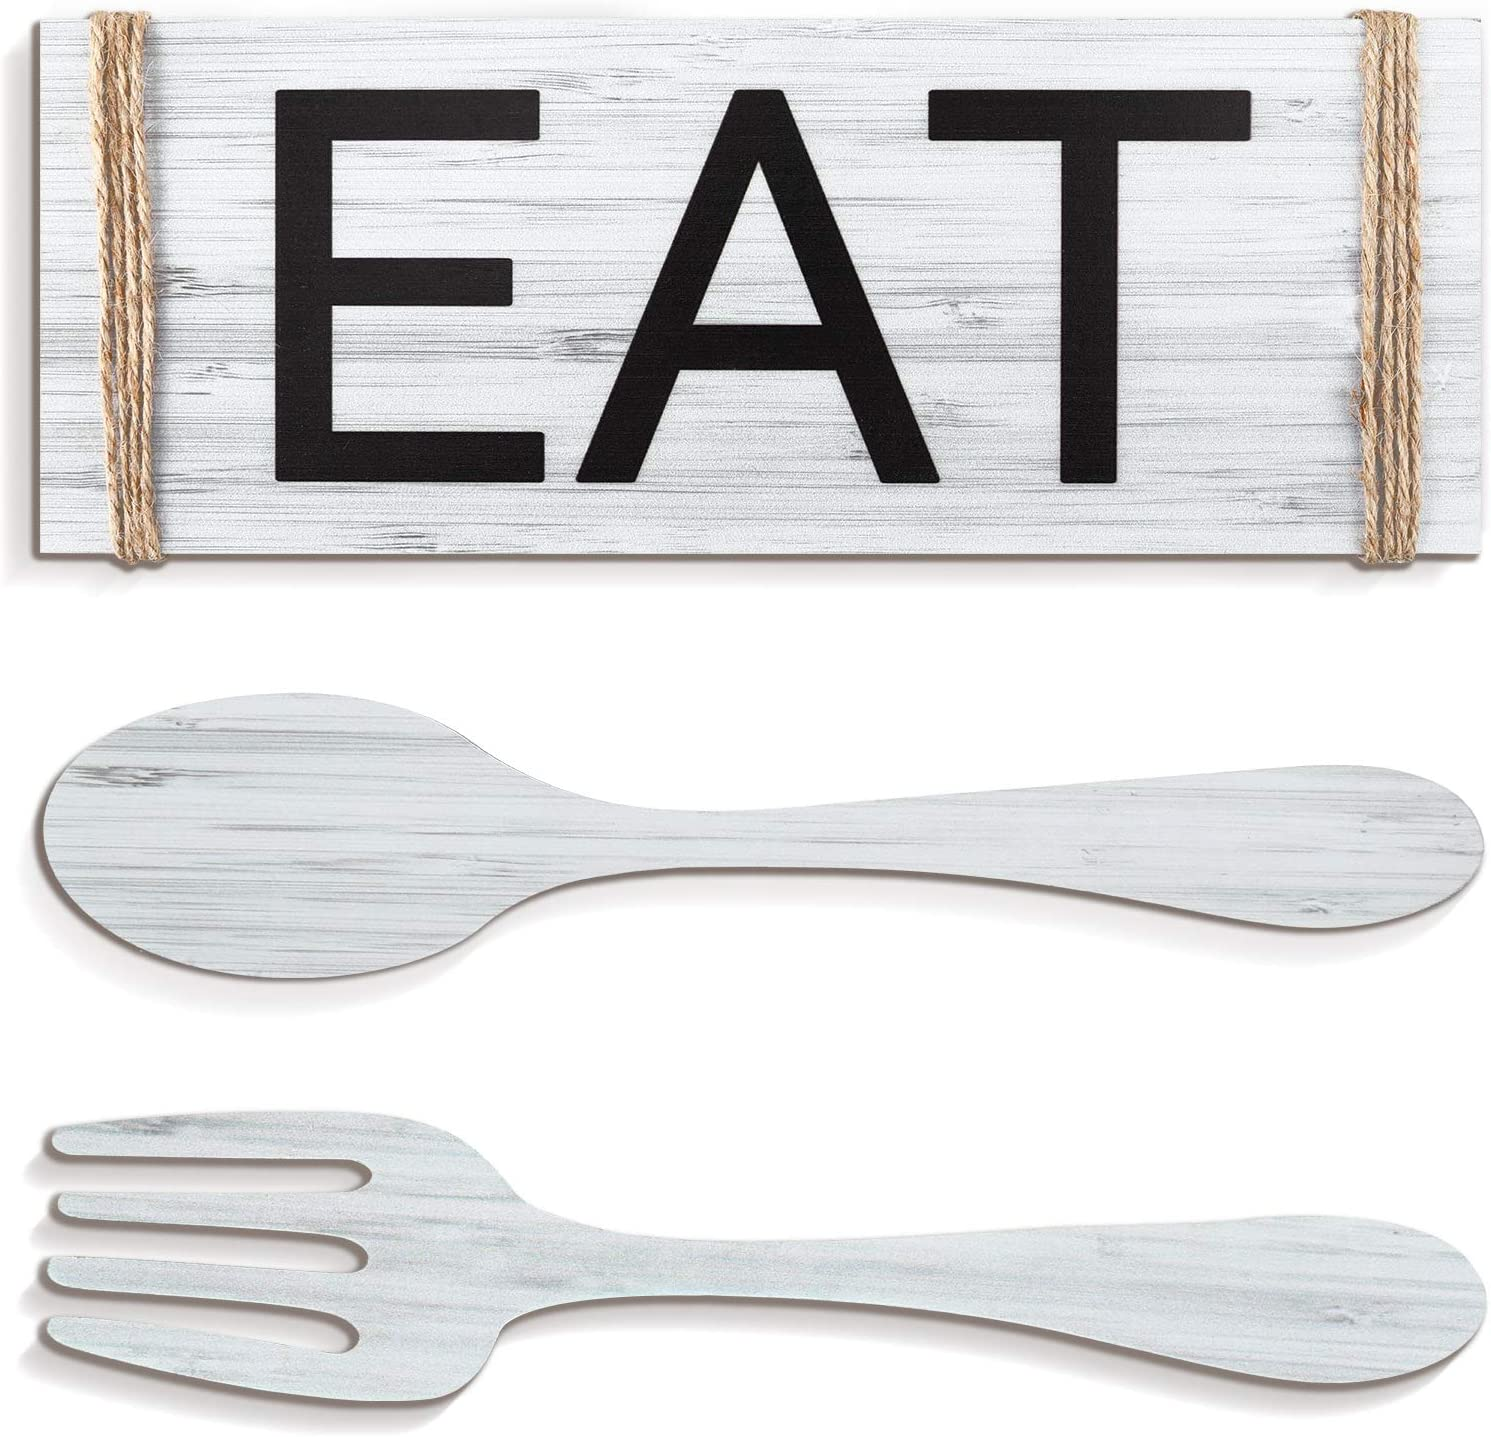 Yerliker Set of 3 Pieces Eat Sign Wall Decor, Rustic Farmhouse Spoon Fork Wooden Sign Decoration Country Wall Art Decorative Hanging Wooden Letters for Kitchen Home Decor (Light Gray)